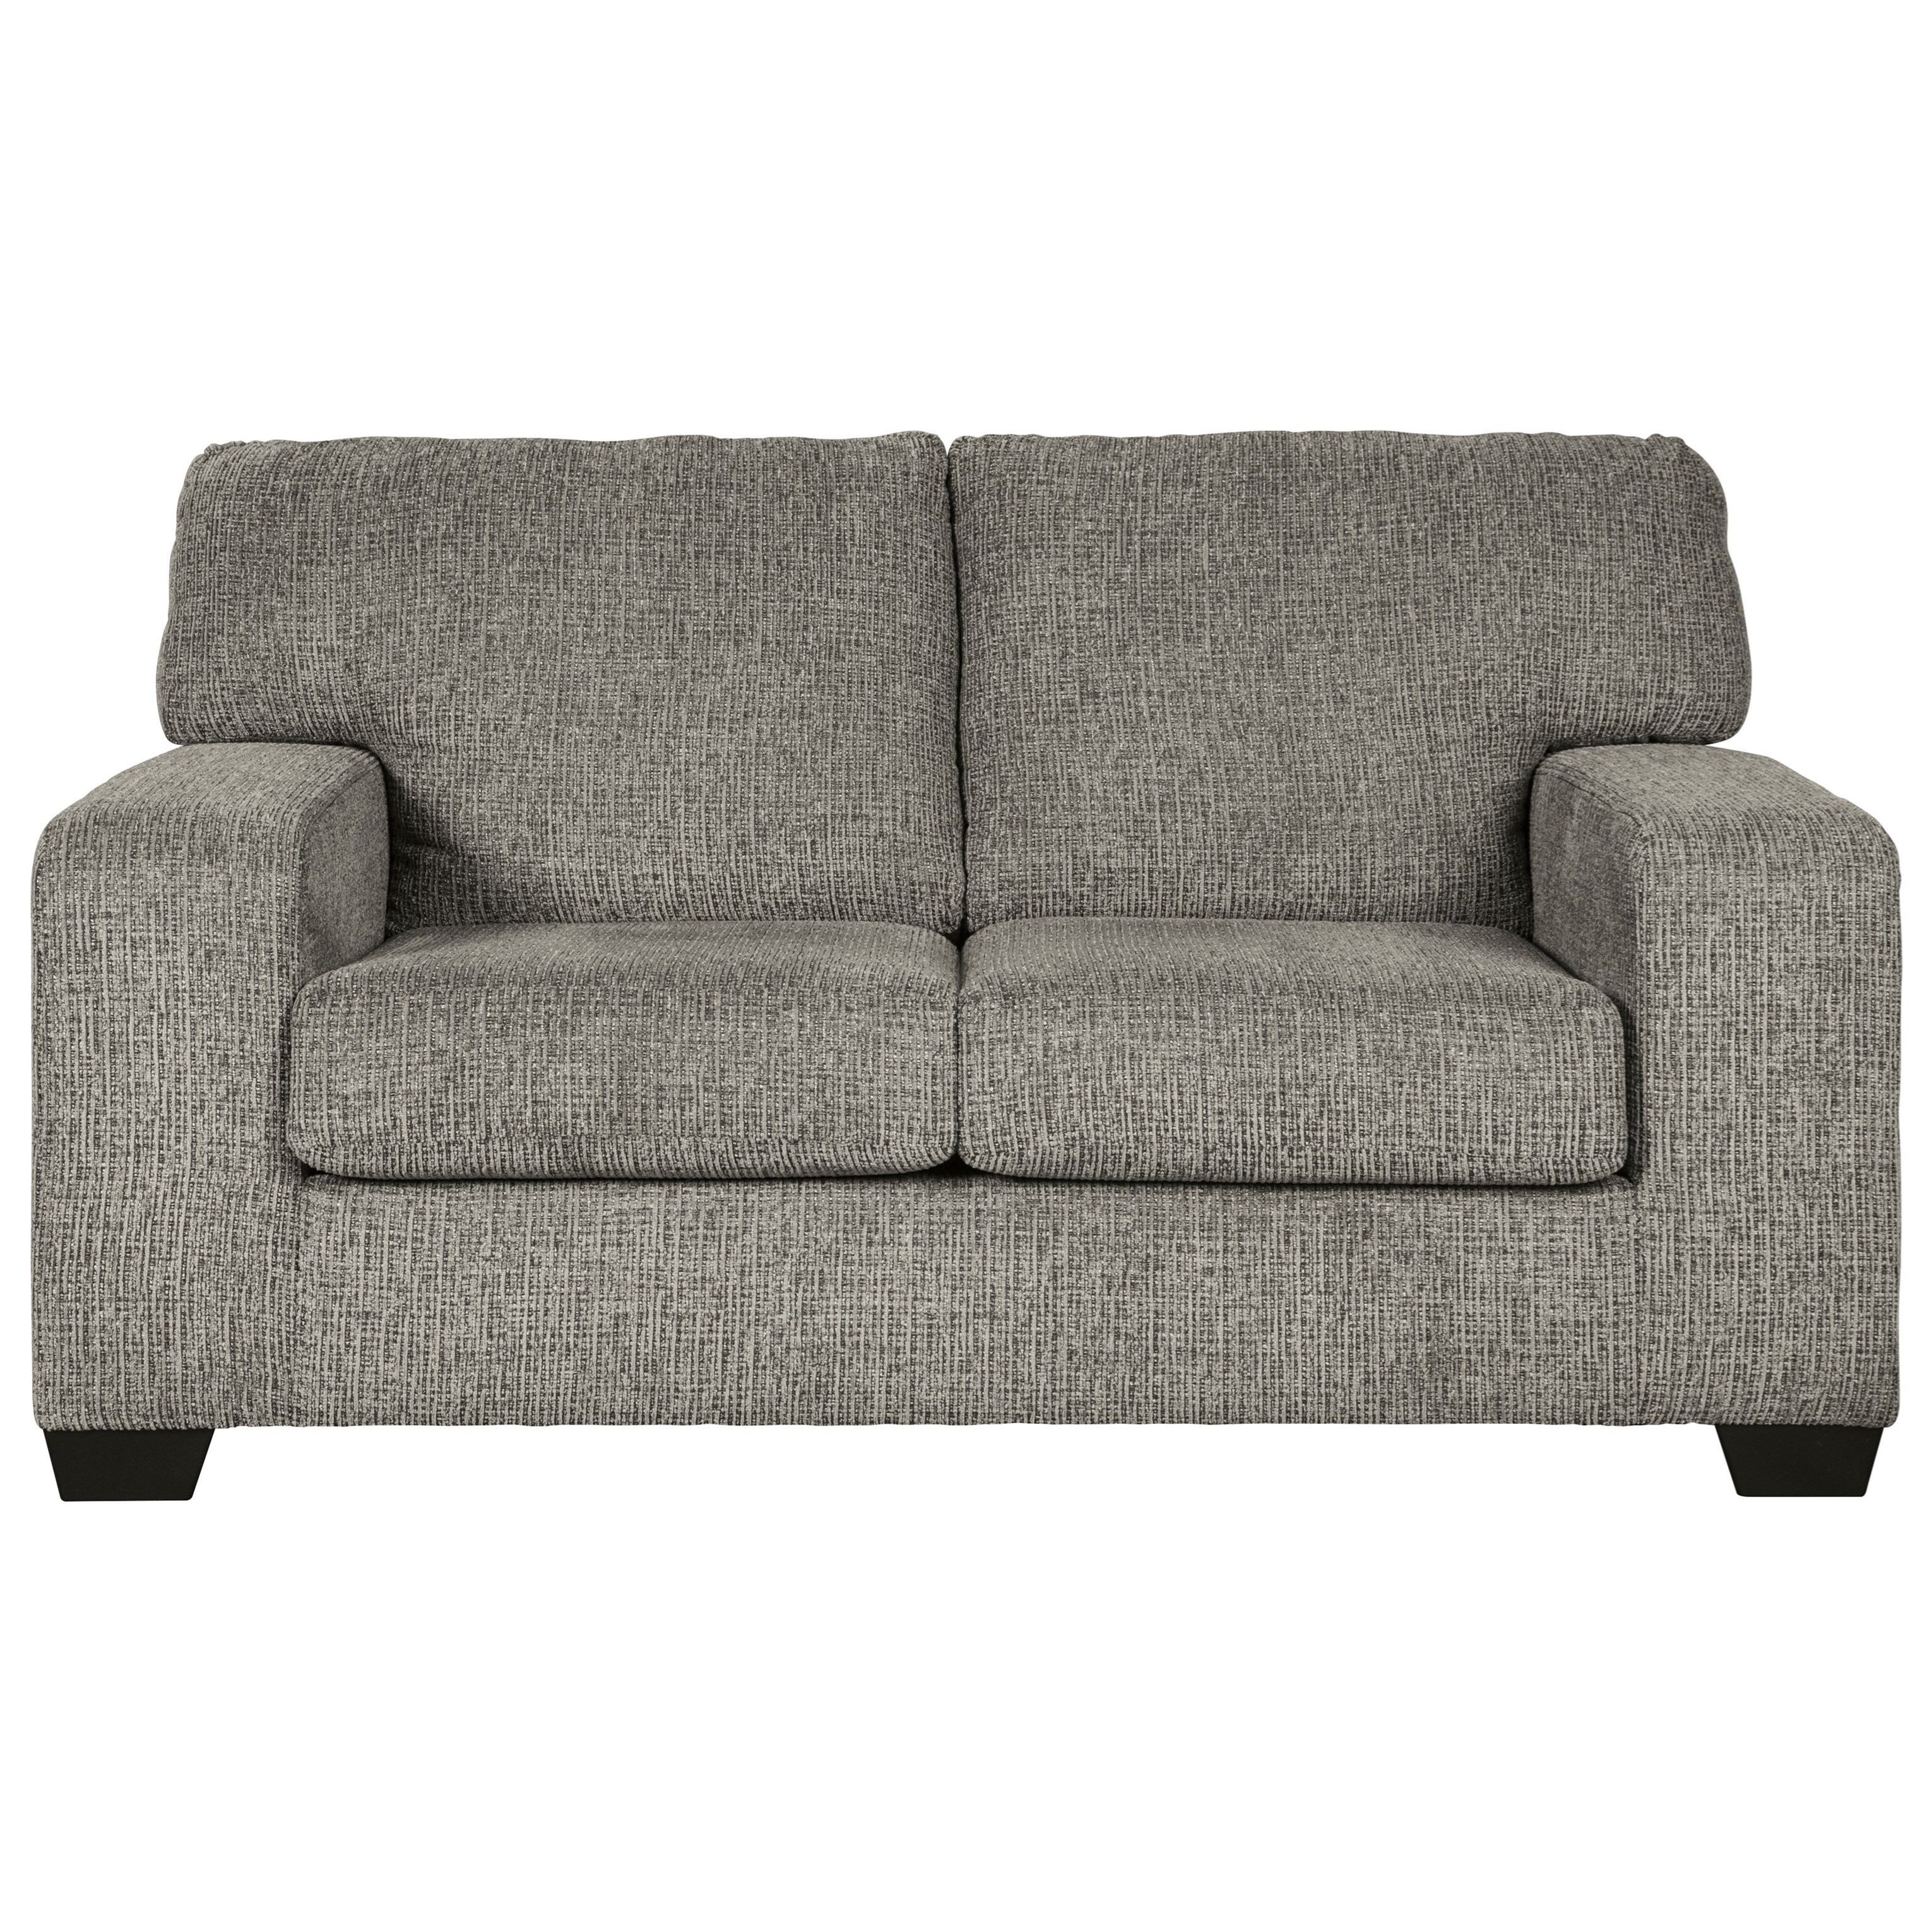 Contemporary Loveseat with Track Arms in Gray Fabric